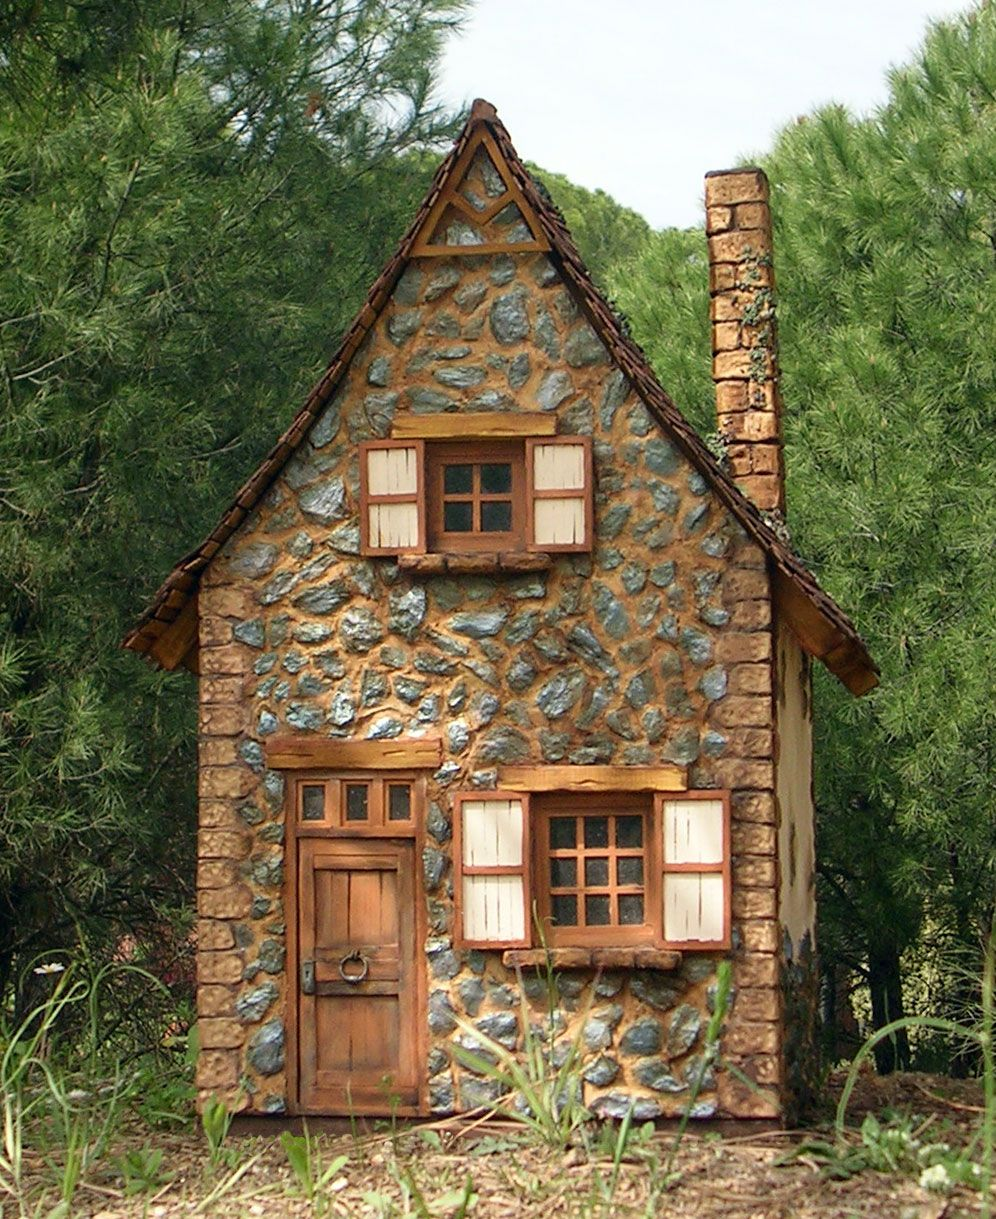 This little dream of a house oozes character as if to say